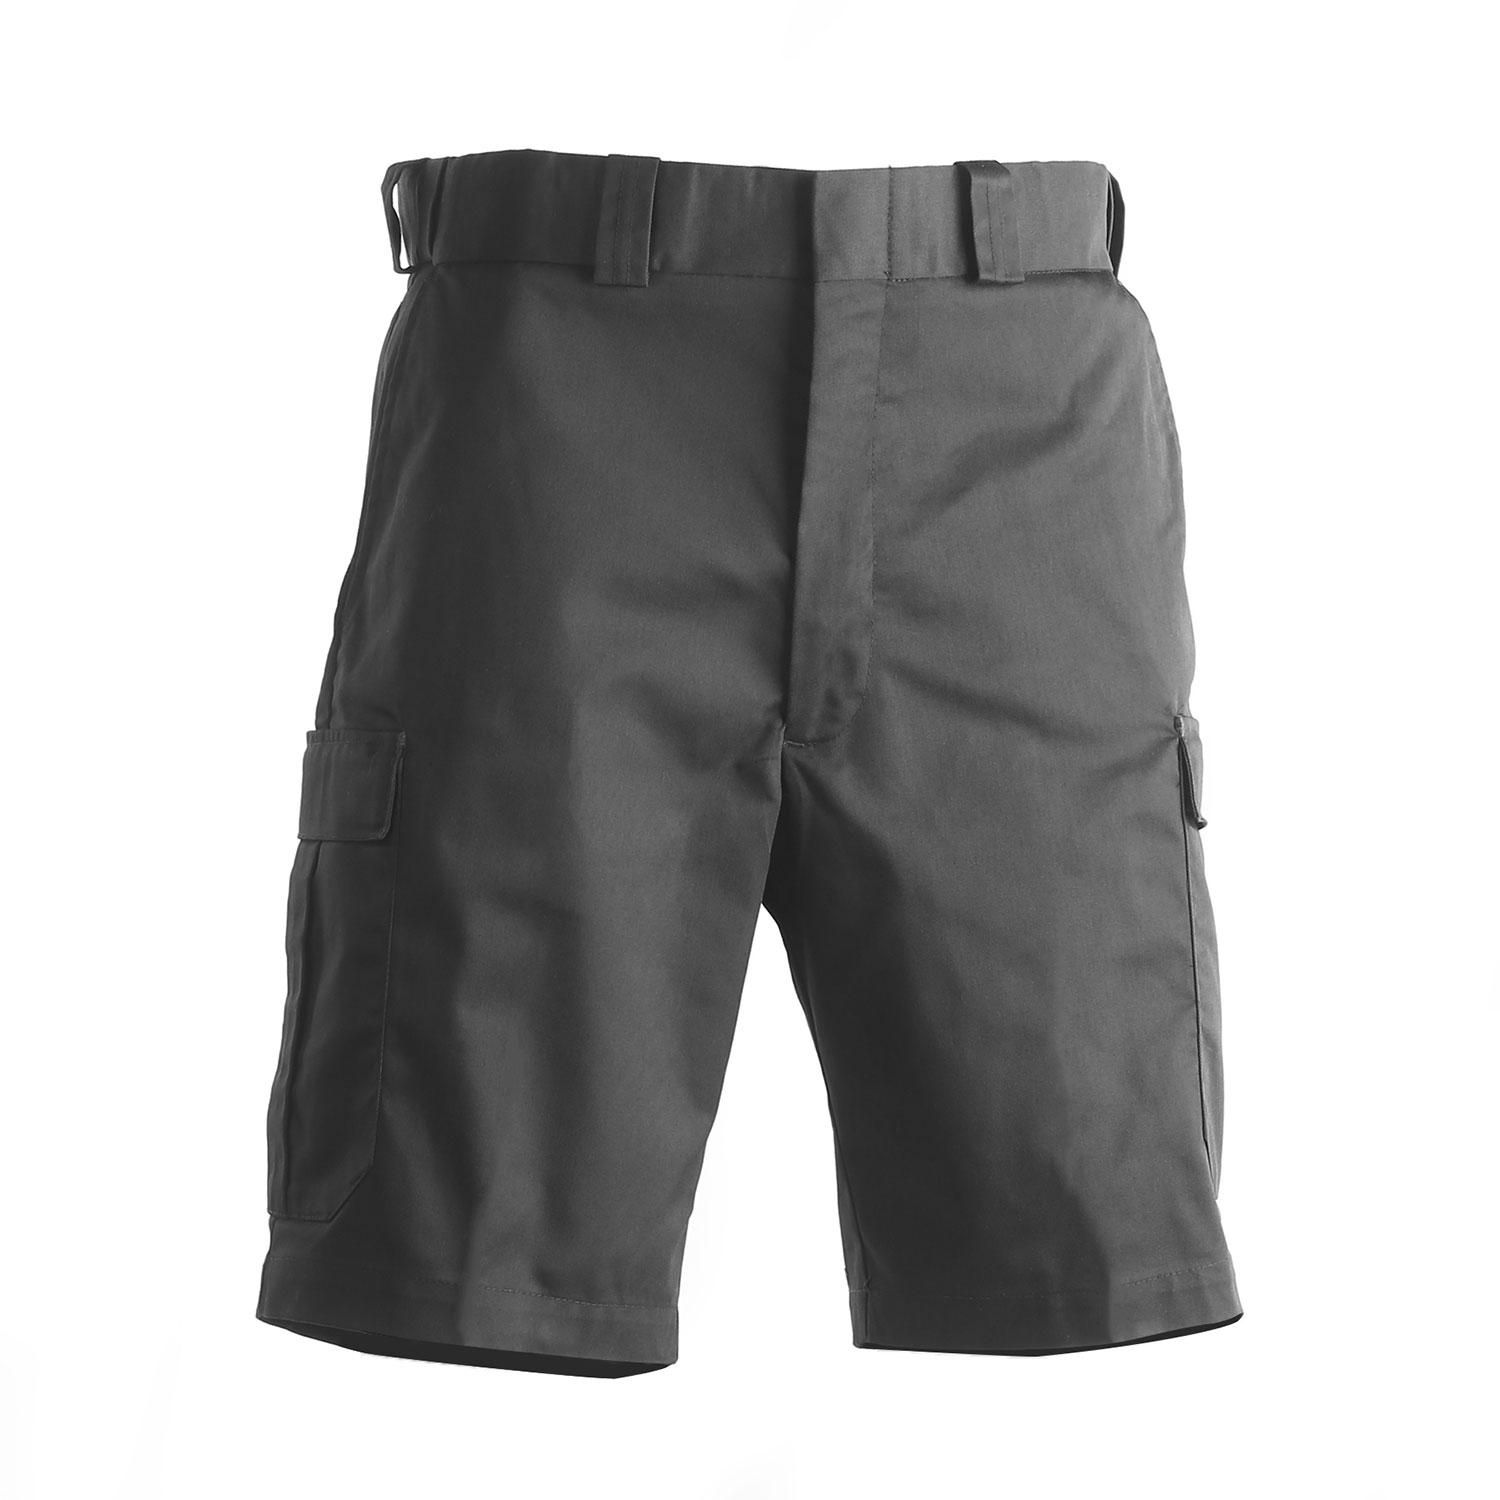 Galls G-Force Tactical Shorts